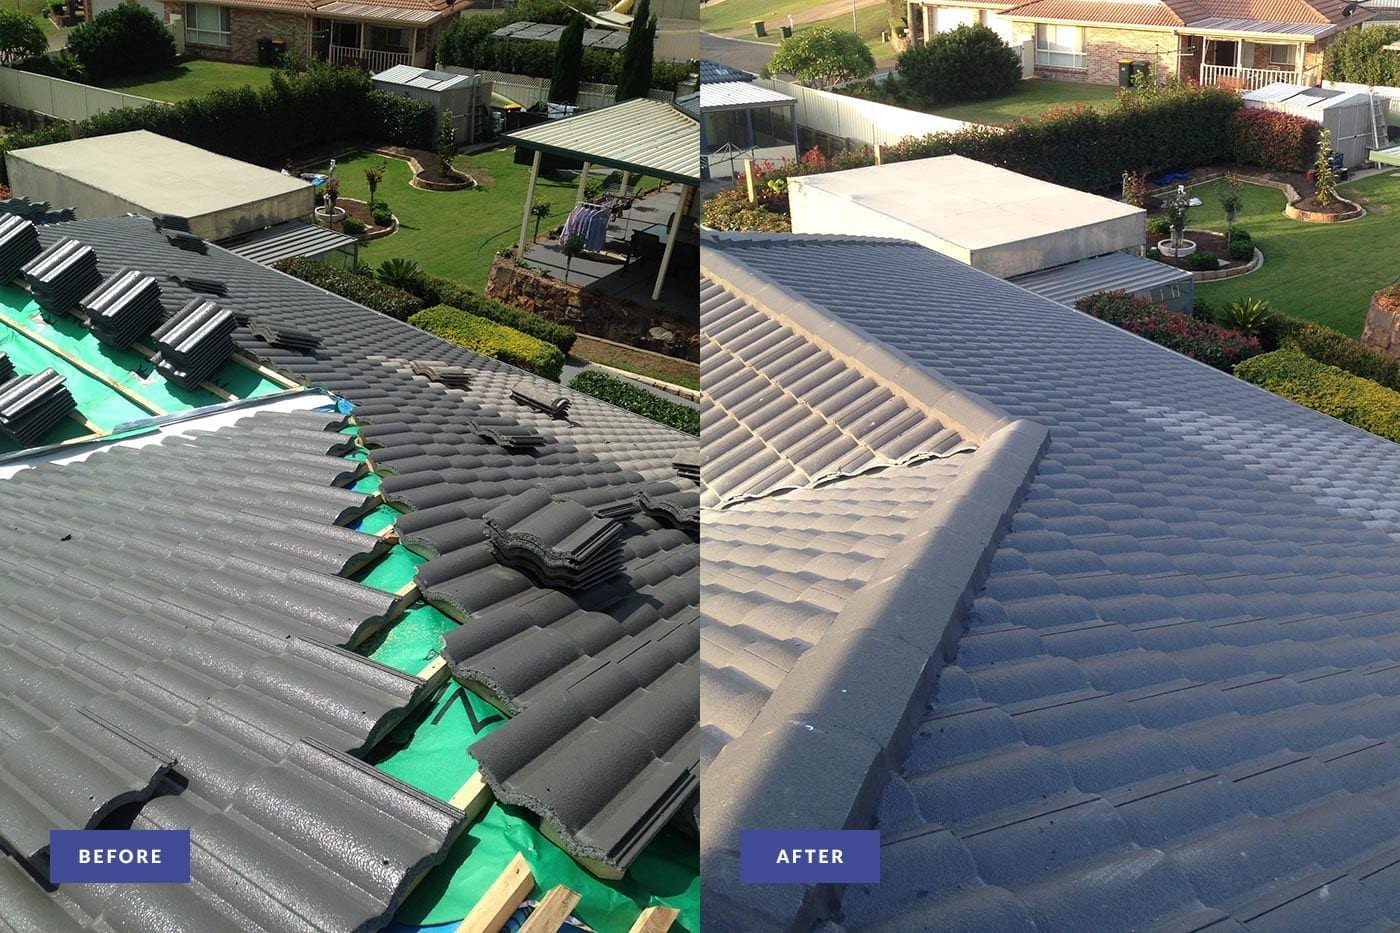 tiled roof repair before and after